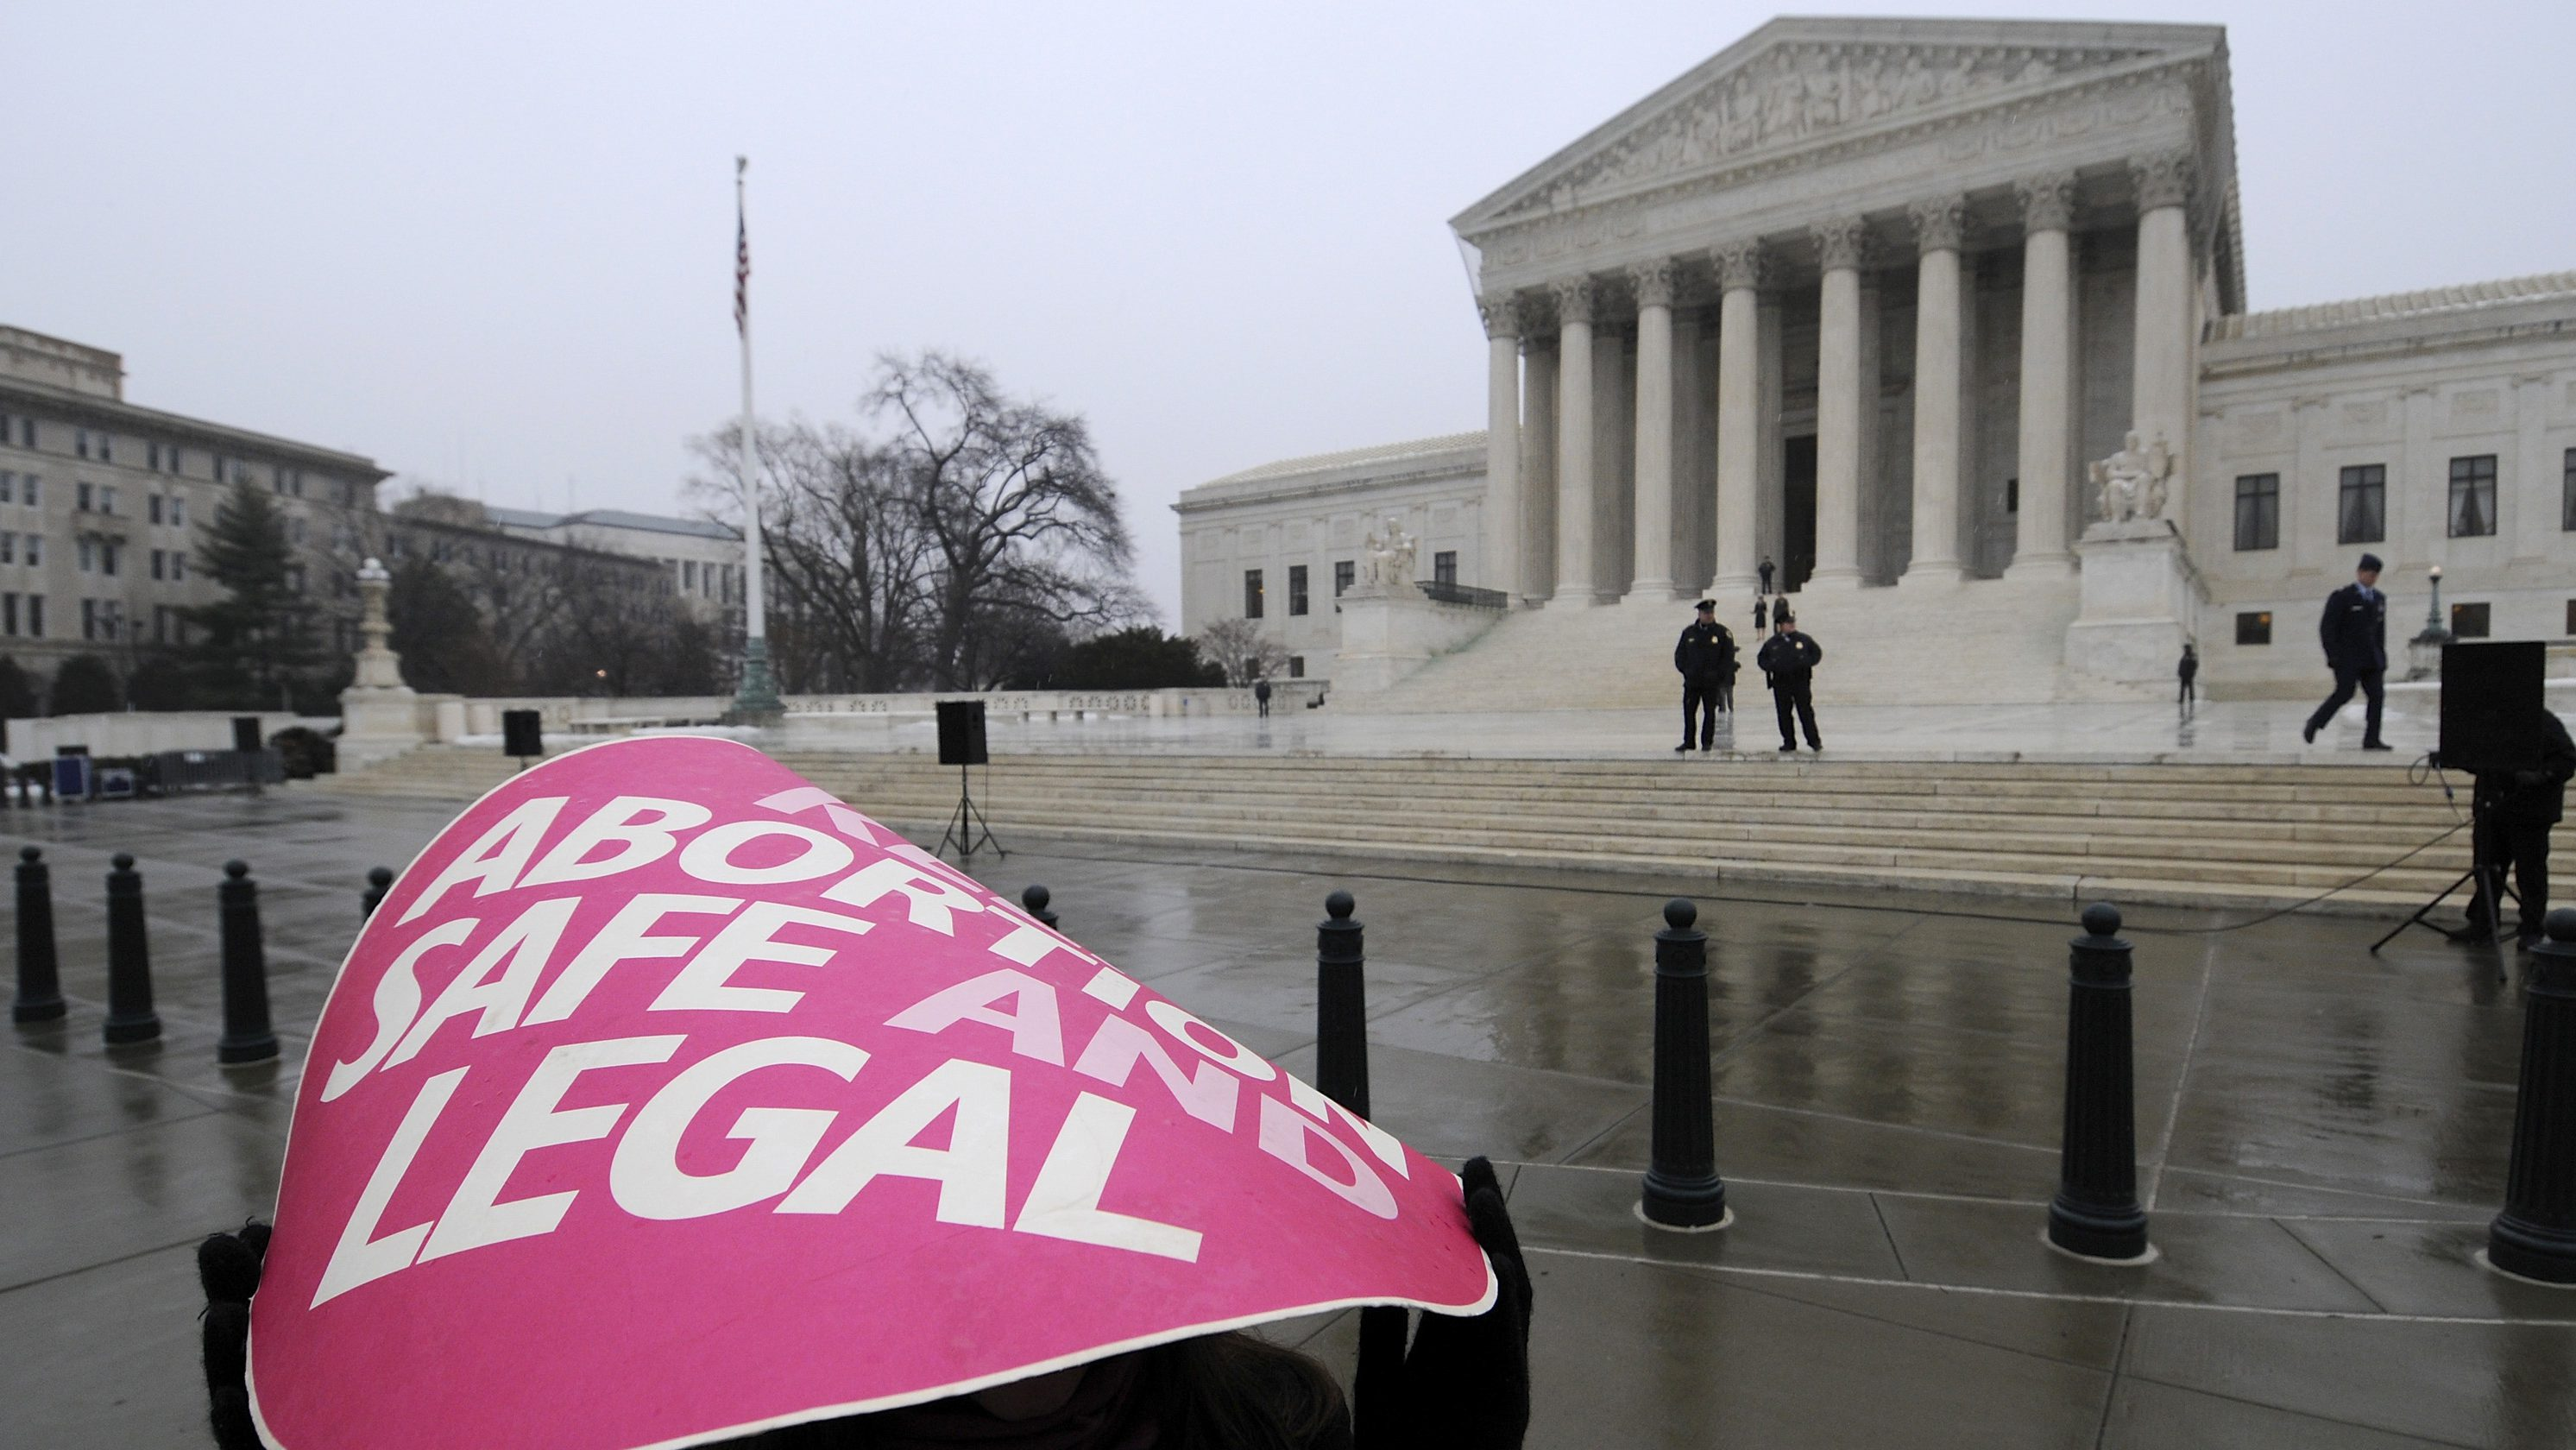 A woman holds a sign in the rain as abortion rights protestors arrive to prepare for a counter protest against March for Life anti-abortion demonstrators on the 39th anniversary of the Roe vs Wade decision, in front of the U.S. Supreme Court building in Washington, January 23, 2012. REUTERS/Jonathan Ernst   (UNITED STATES - Tags: POLITICS CIVIL UNREST HEALTH CRIME LAW) - GM1E81O03DT01